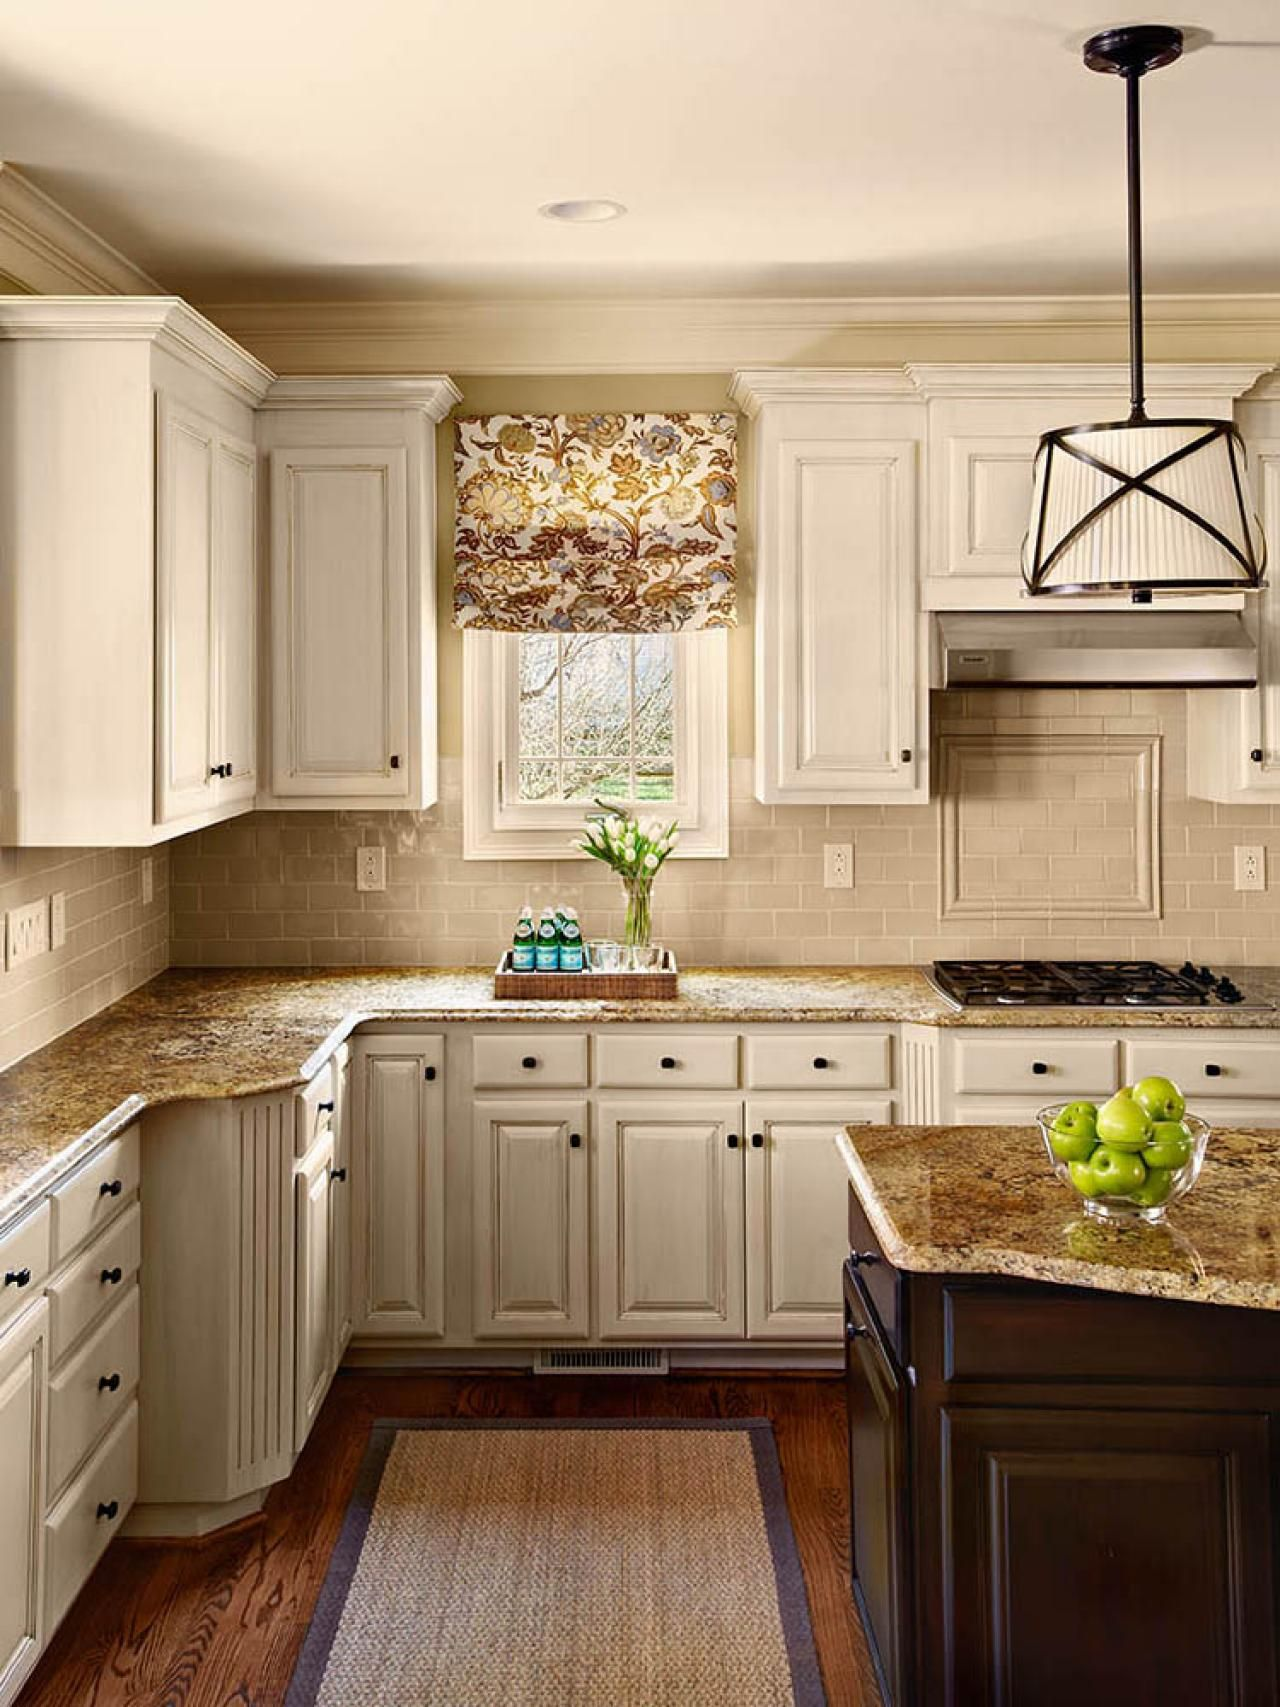 Resurfacing Kitchen Cabinets: Pictures & Ideas From | Picture ideas ...